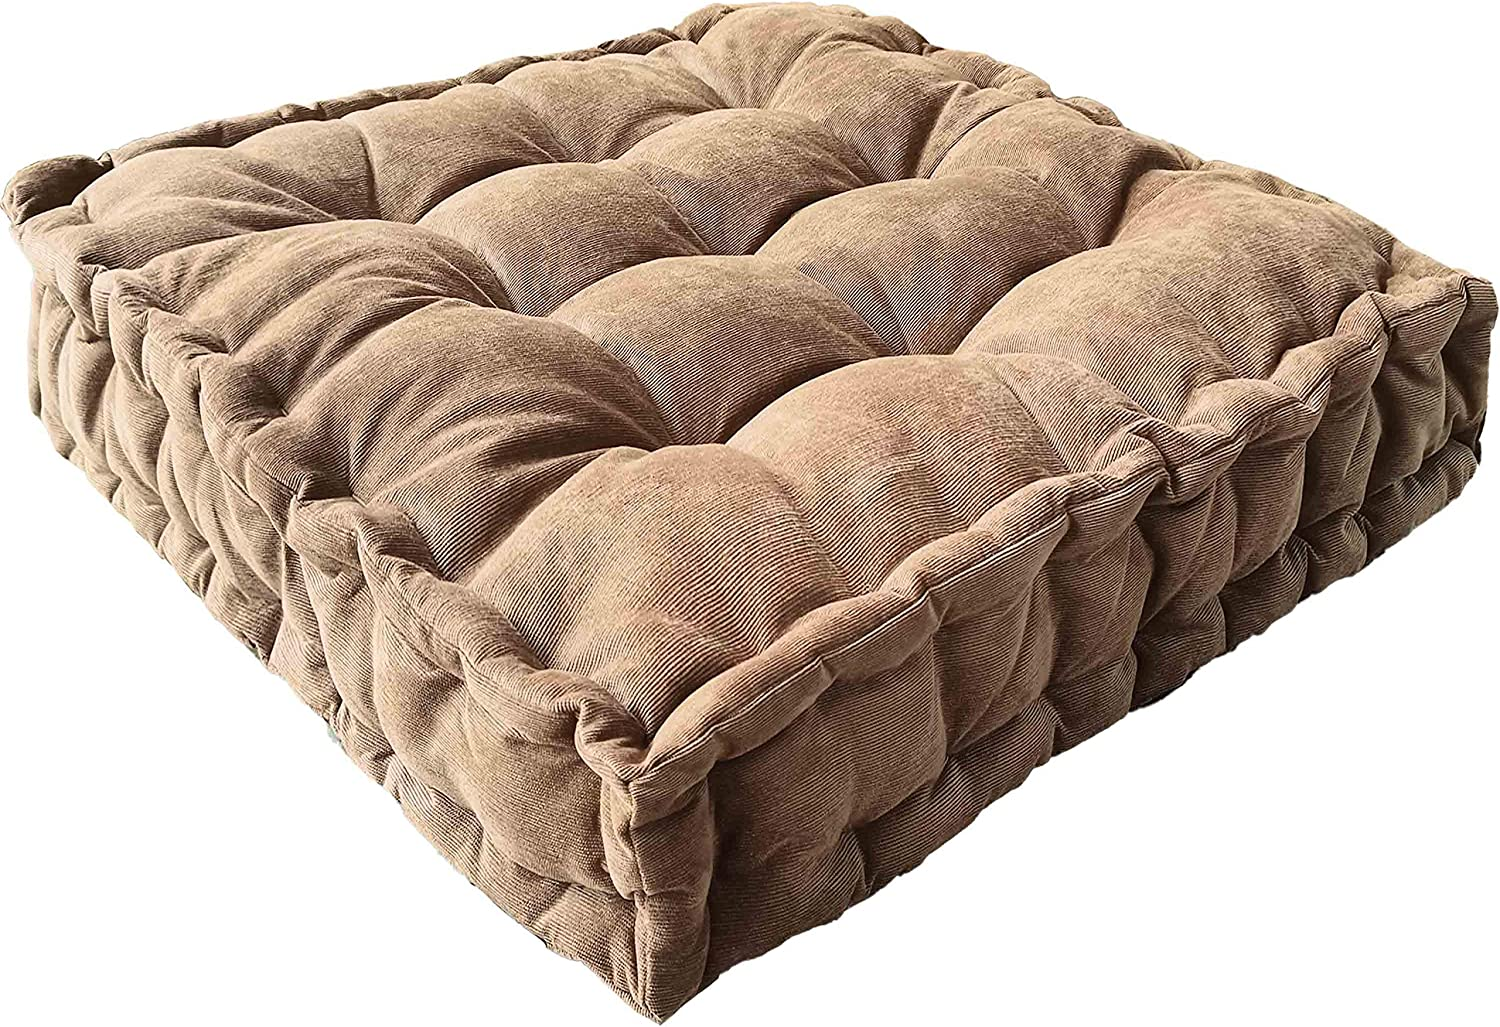 Floor Pillow,Square Meditation Cushion Floor Seating for Adults,Oversized Tufted seat Cushion Reading Nook for Kids, Yoga Meditation Pillow for Sitting on Floor,25x25 Inch (Bronze)